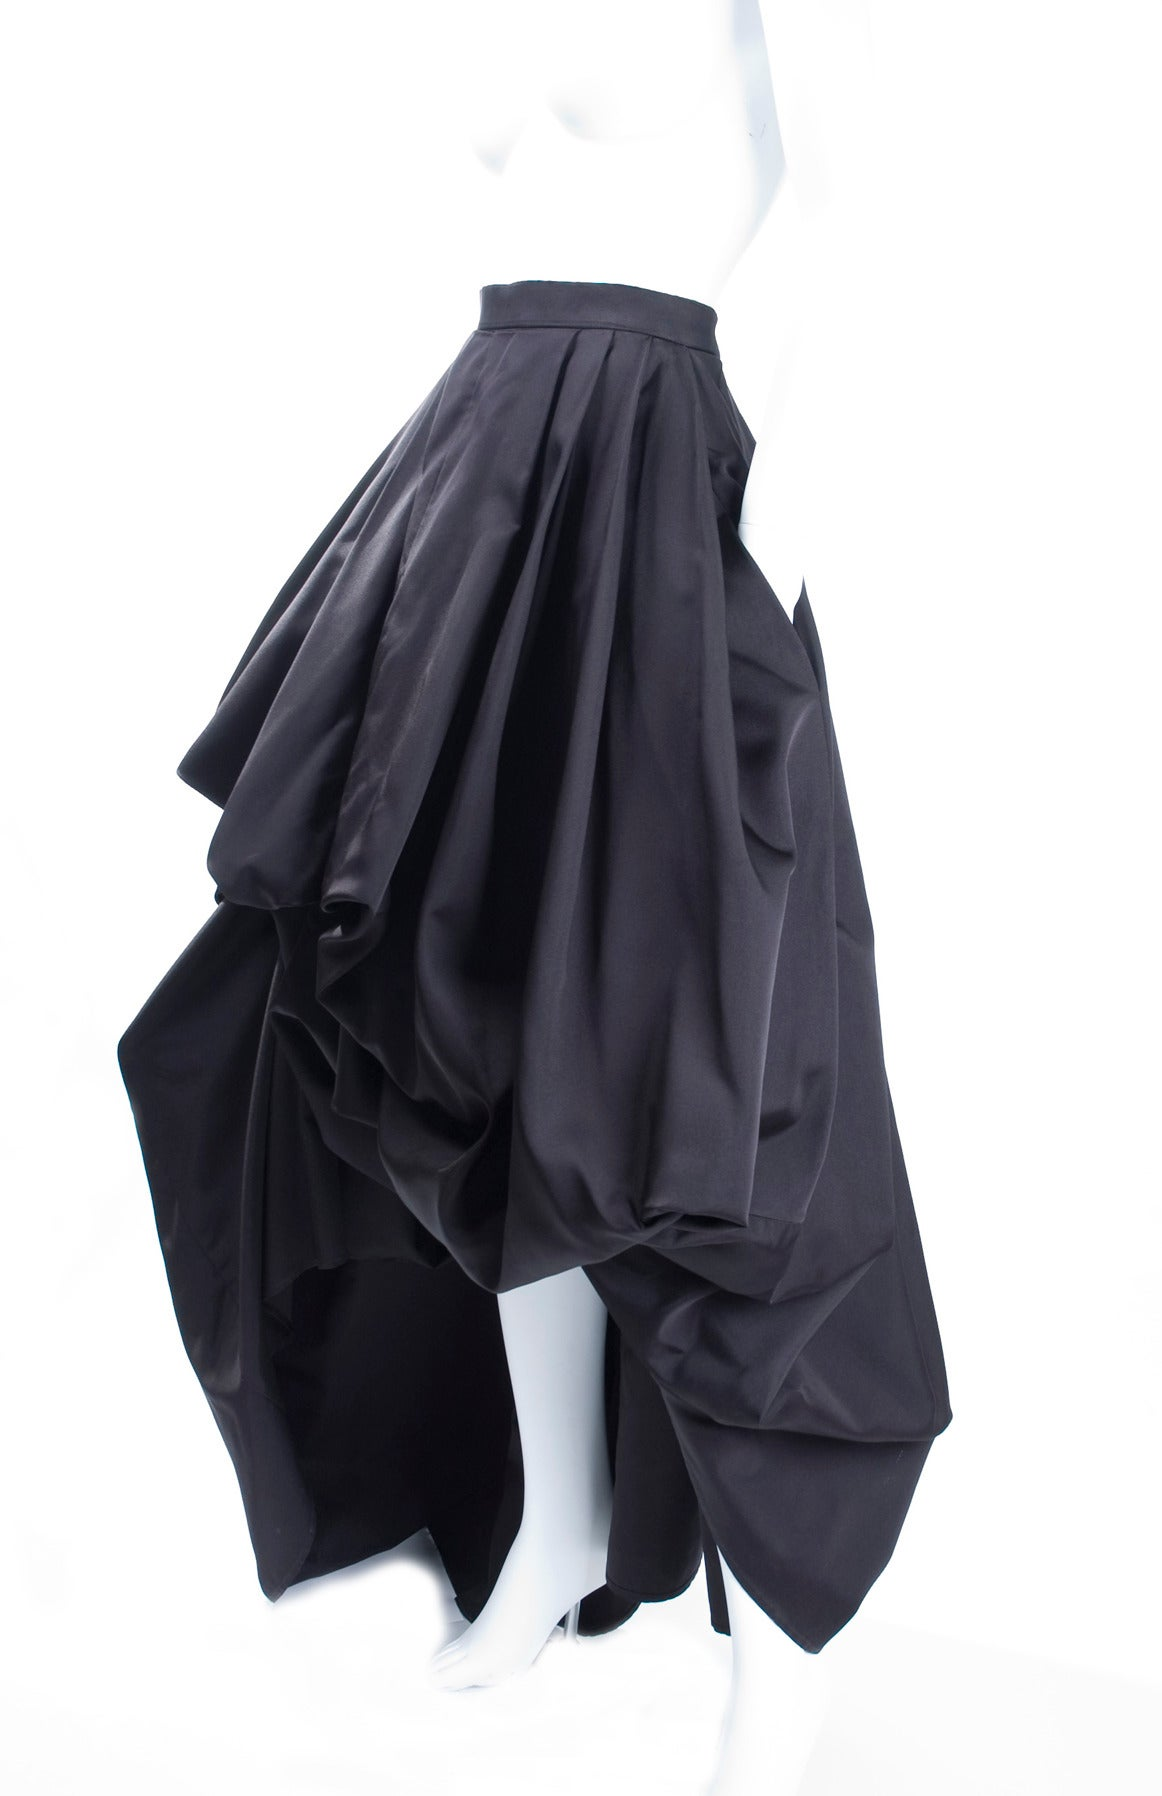 Rare Vintage HERMES Asymetrical Evening Skirt in Black Silk 3